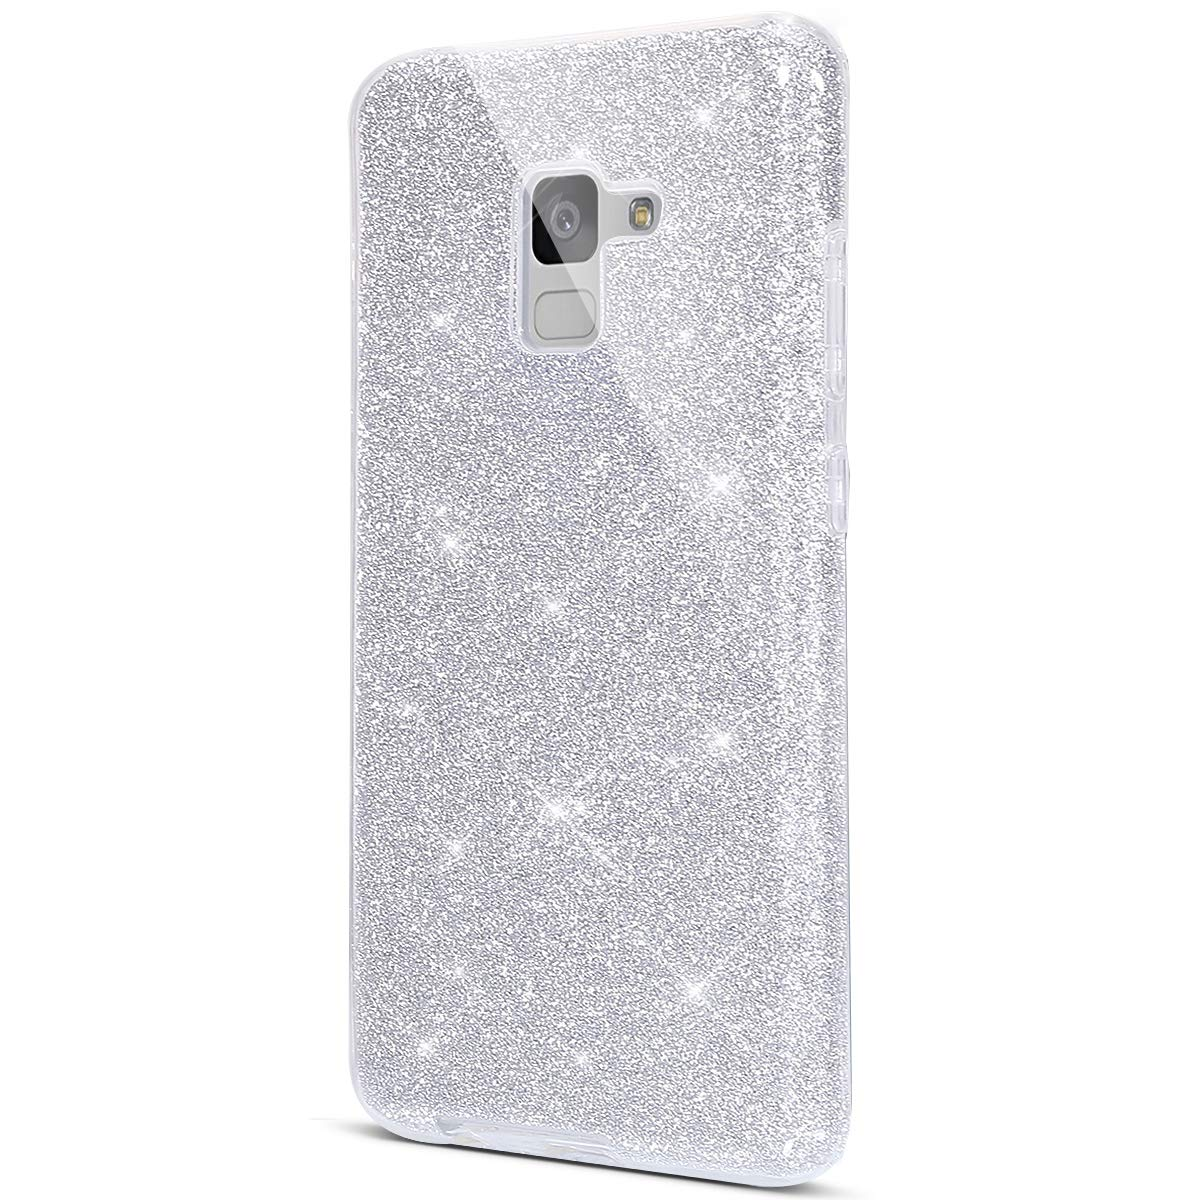 Surakey Cover Samsung Galaxy A7 2018, Custodia in Silicone Brillantini Glitter Premium Ibrida Gel Case Antiurto Bumper [Design 3 in 1] Sottile PC Paillettes Protettiva Cover per Galaxy A7 2018,Oro SUR03657